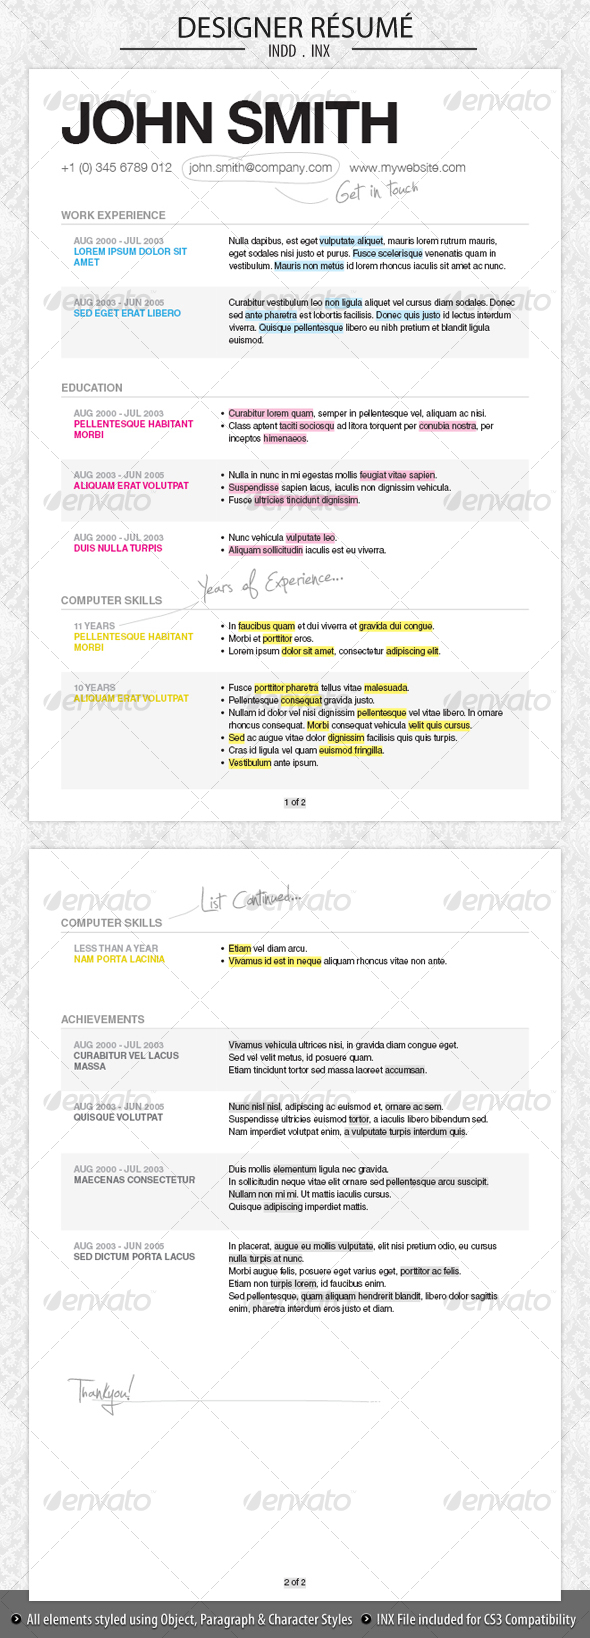 Designer Resume - Resumes Stationery